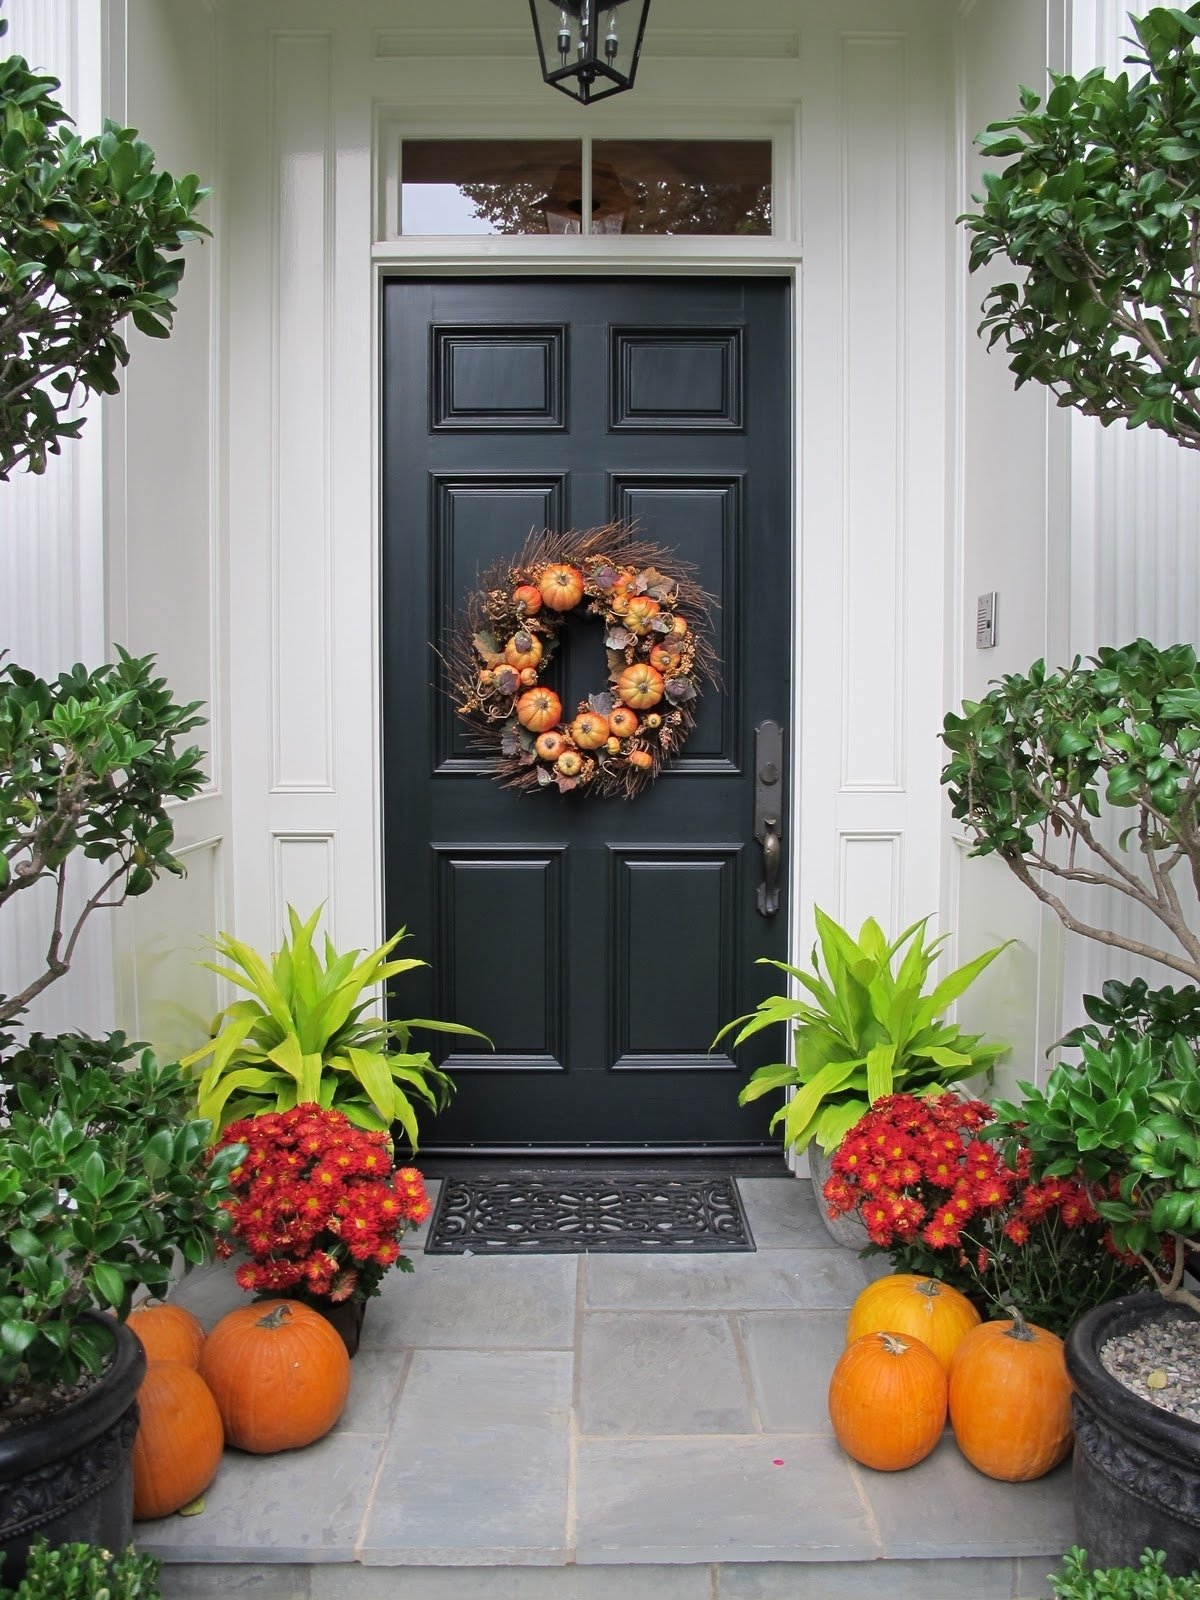 10 Lovely Front Door Fall Decorating Ideas simple and easy fall front doors lorri dyner design